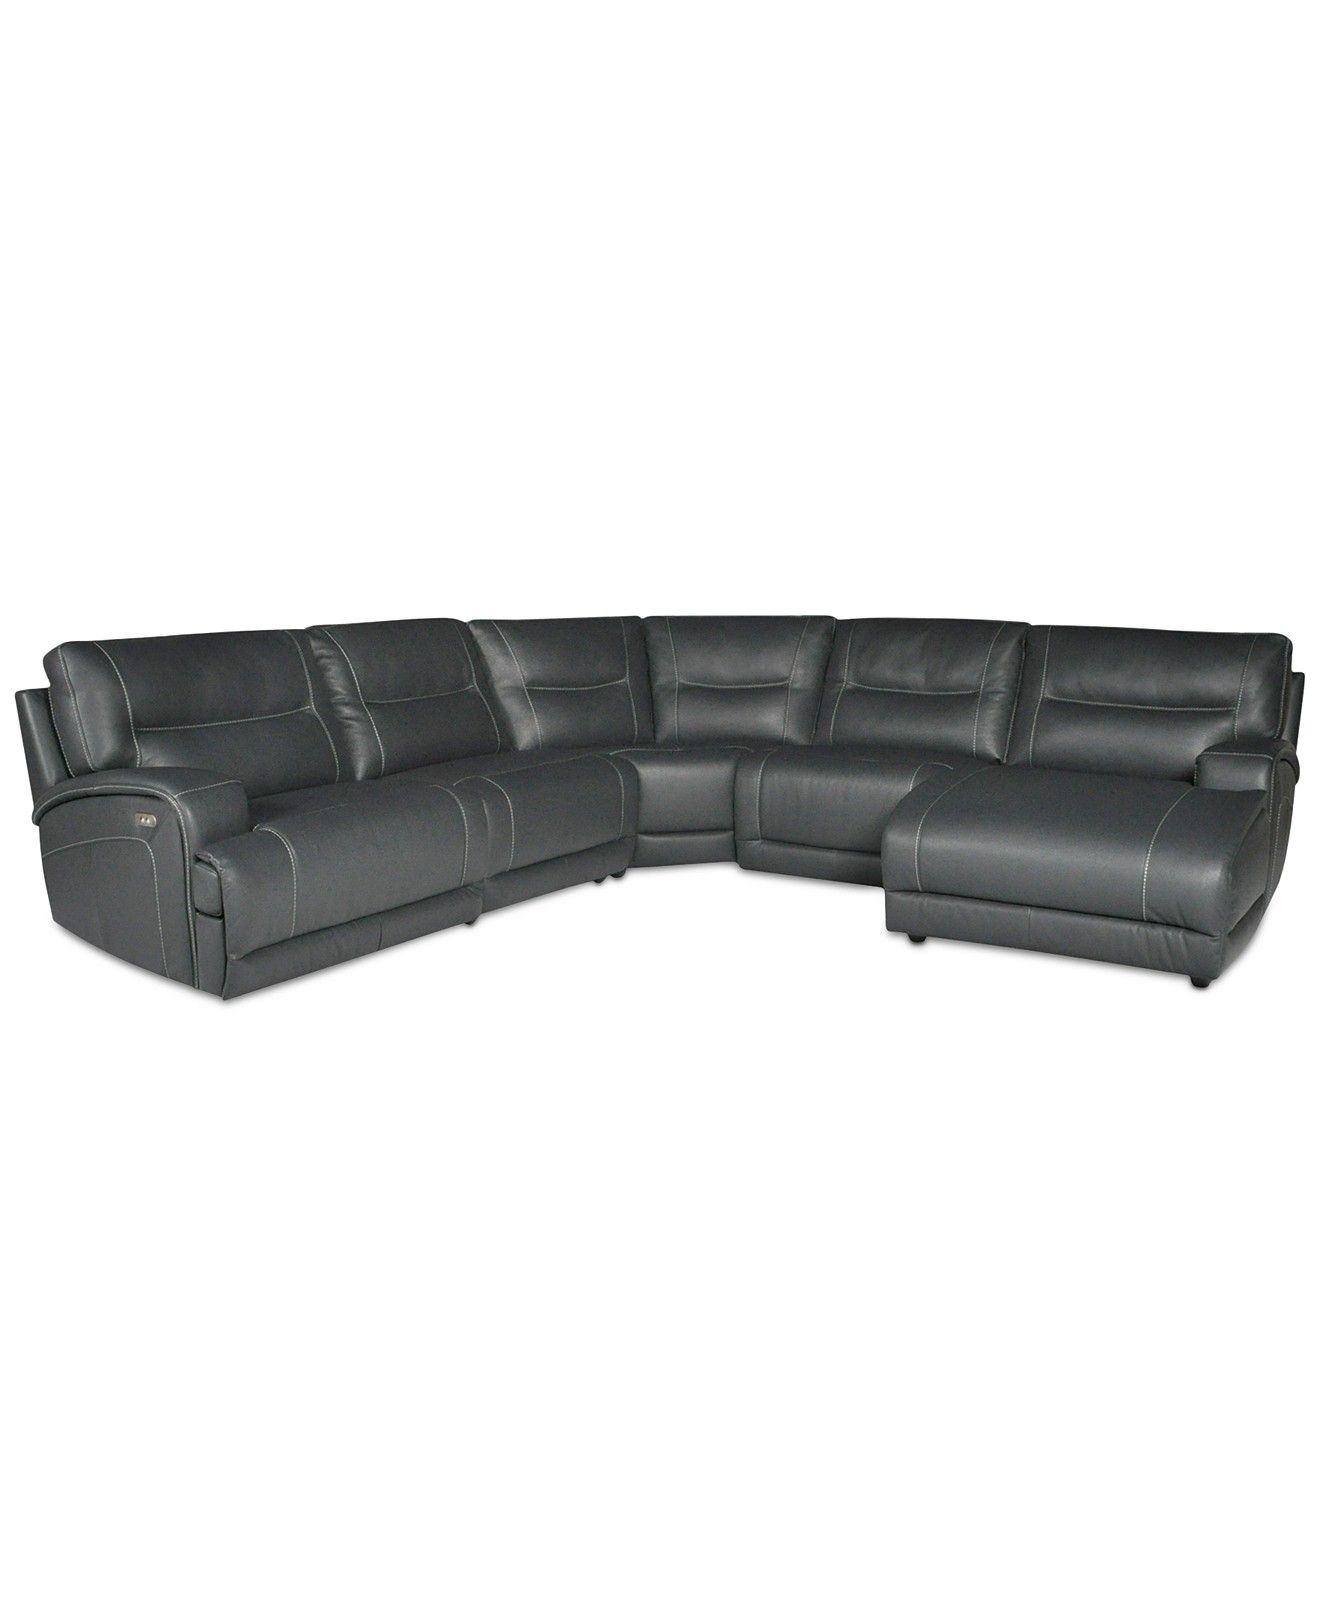 Caruso Leather 5 Piece Chaise Sectional Sofa With 1 Powered Recliner